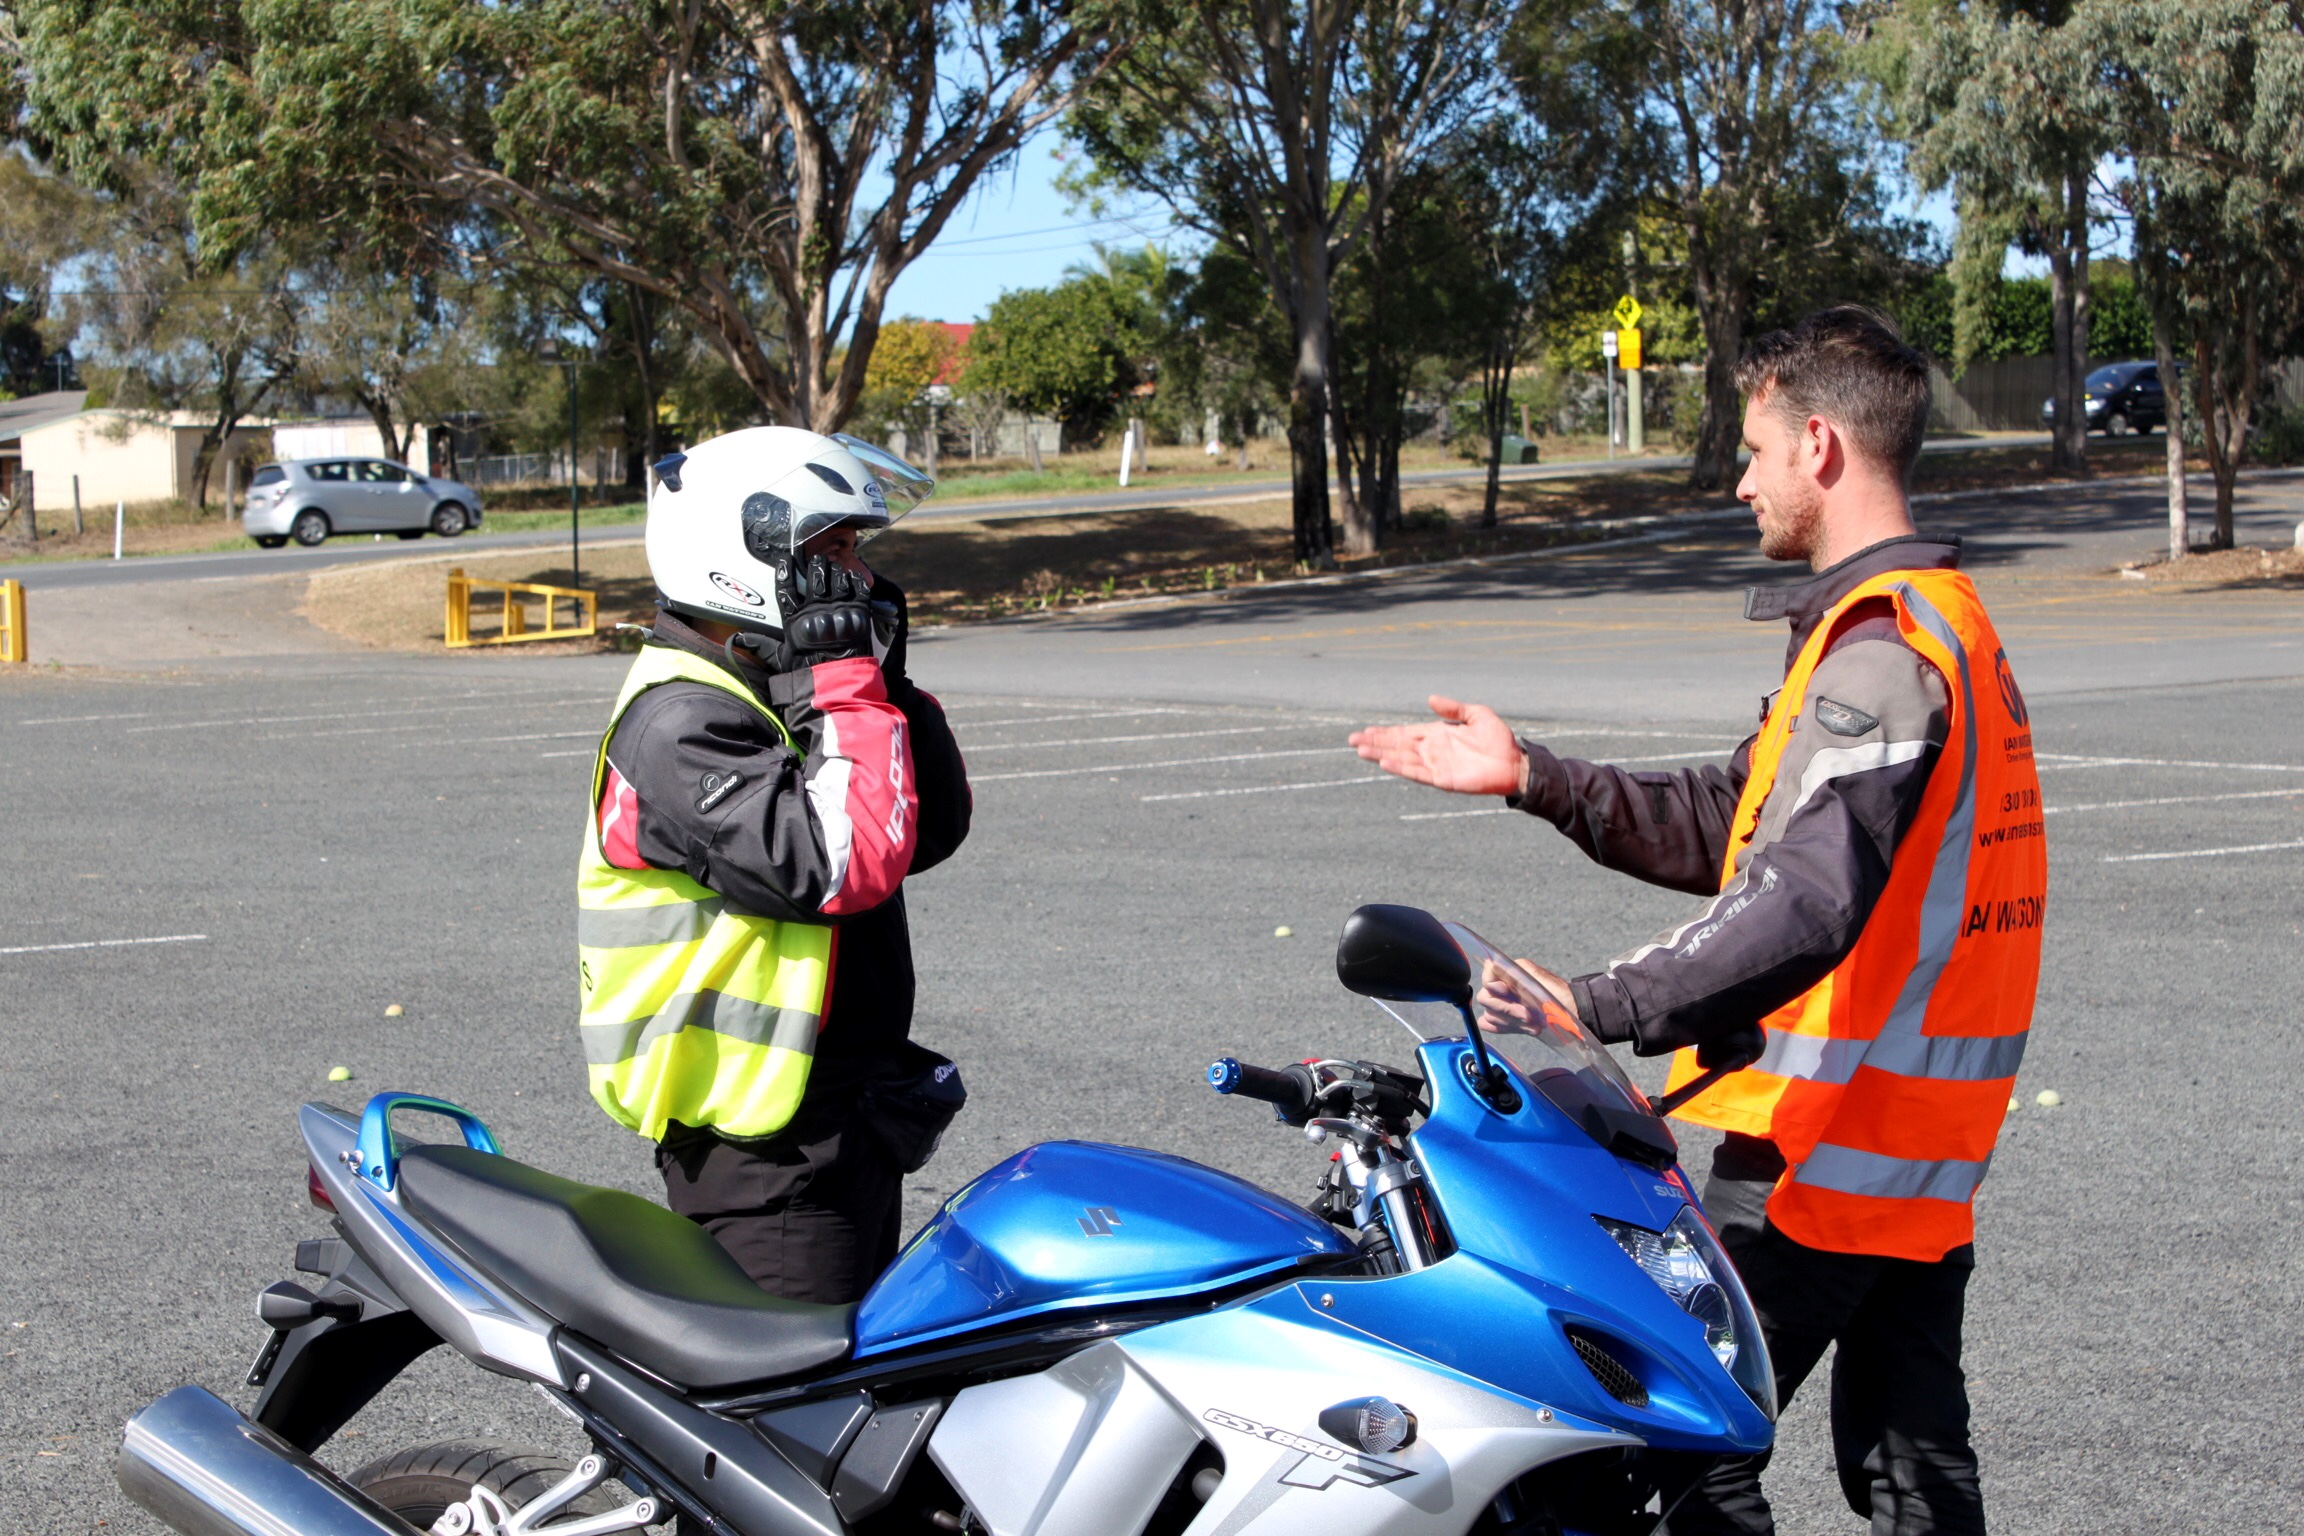 Motorcycle Helmets - can save your life! Buy a good one, wear it correctly at all times and take care of it.